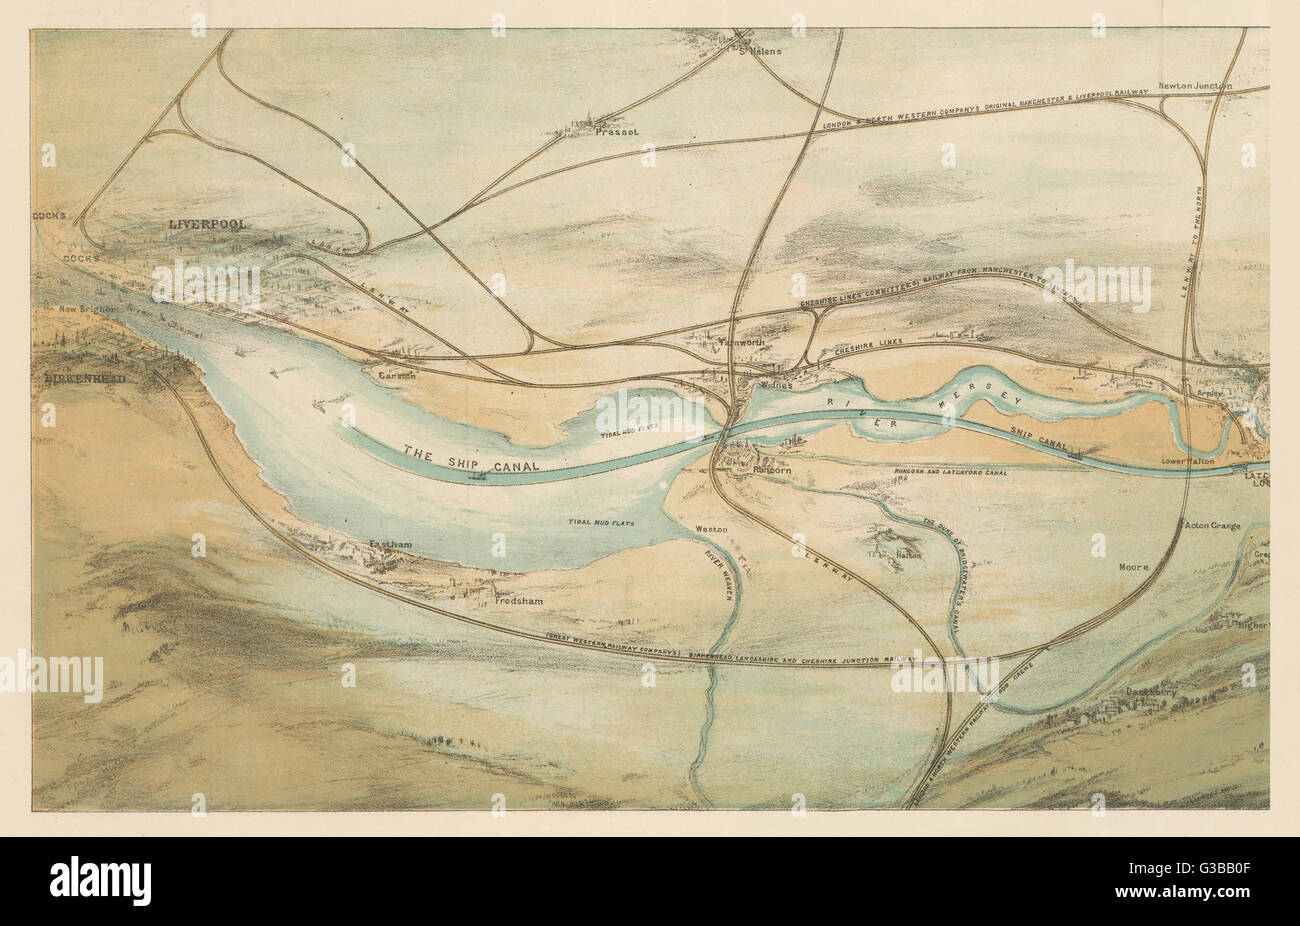 River Mersey Map Stock Photos & River Mersey Map Stock ... on